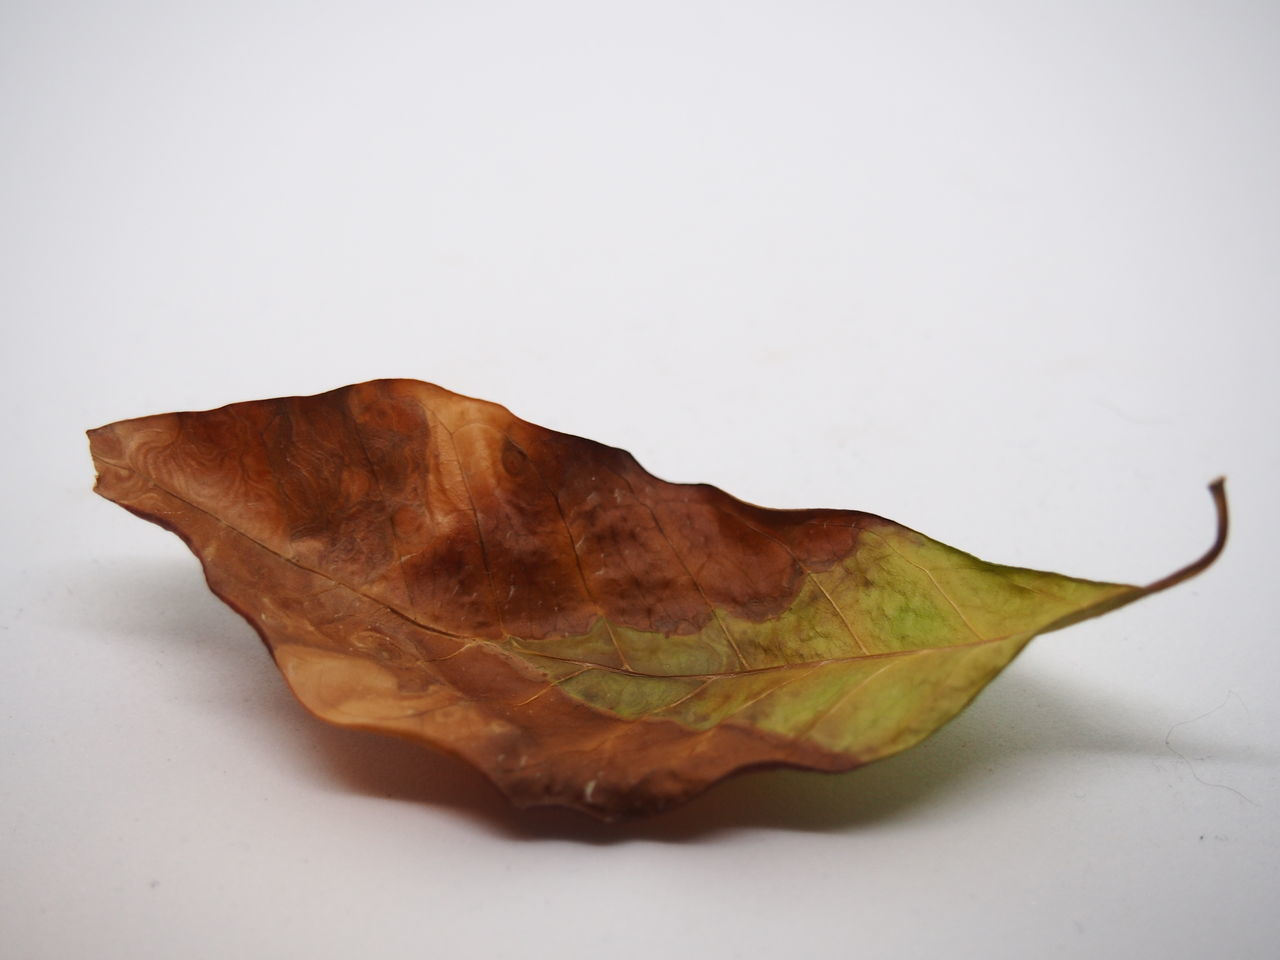 Close-up Crumpled Day Dried Fruit Dry Fragility Leaf Leaves No People Single Object Studio Photography Studio Shot White Background